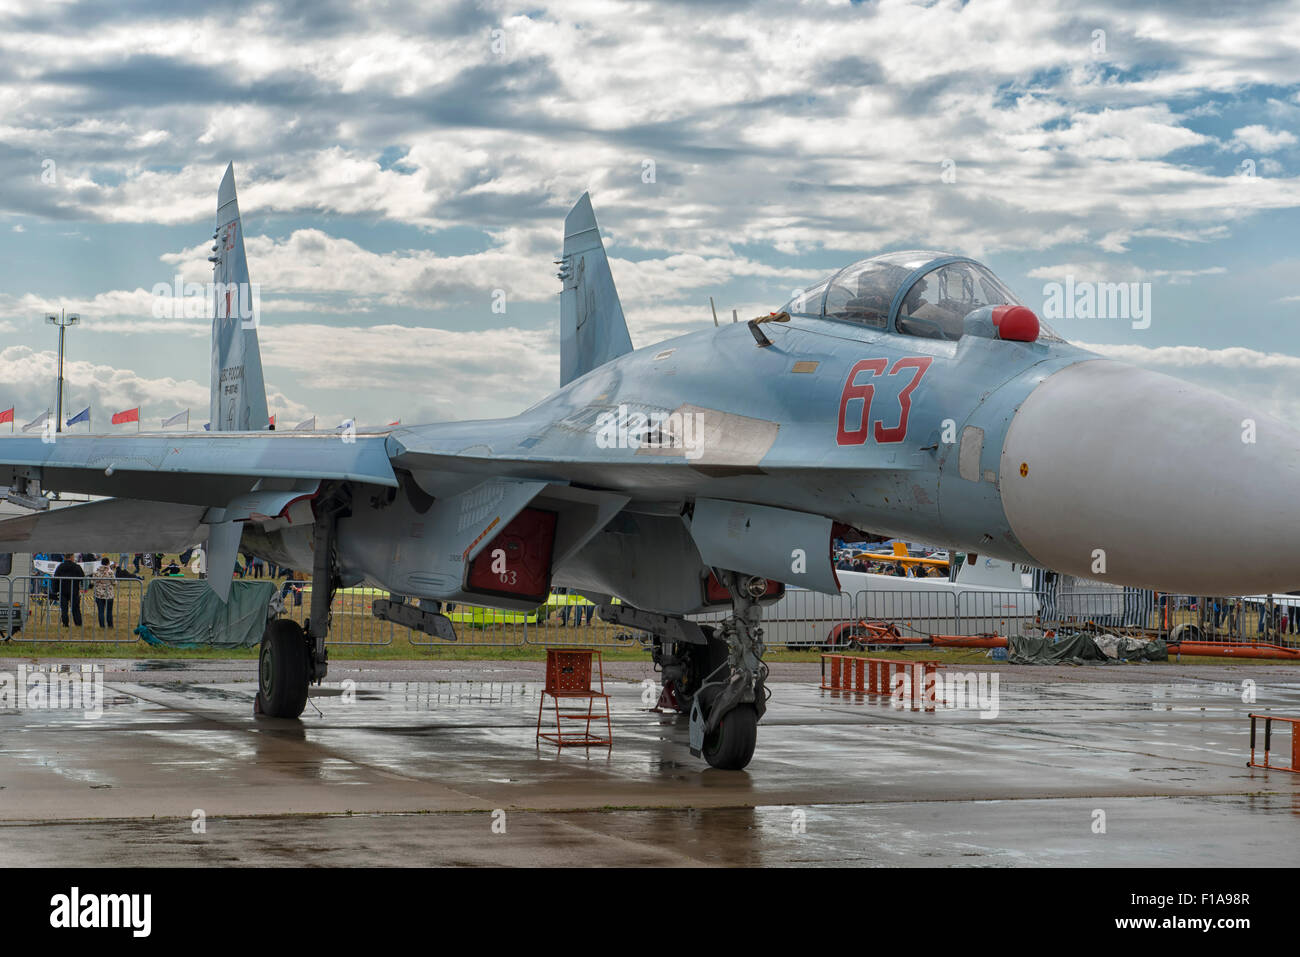 Sukhoi SU-27UBM Flanker at MAKS 2015 Air Show in Moscow, Russia - Stock Image